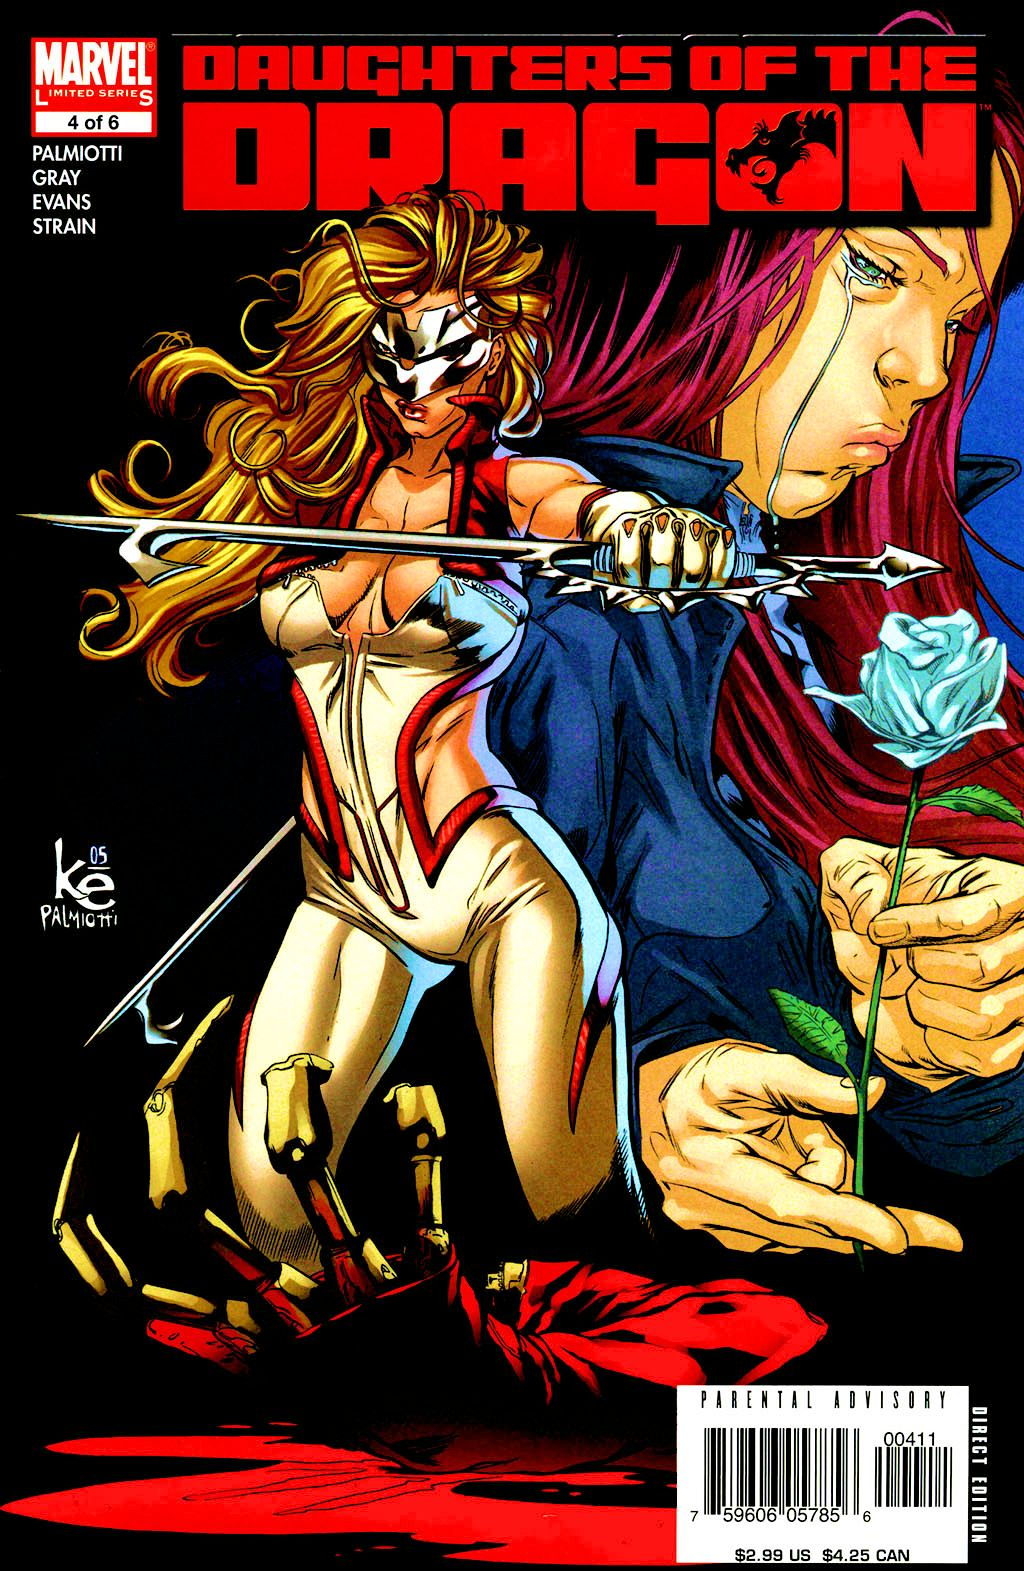 Read online Daughters of the Dragon comic -  Issue #4 - 1